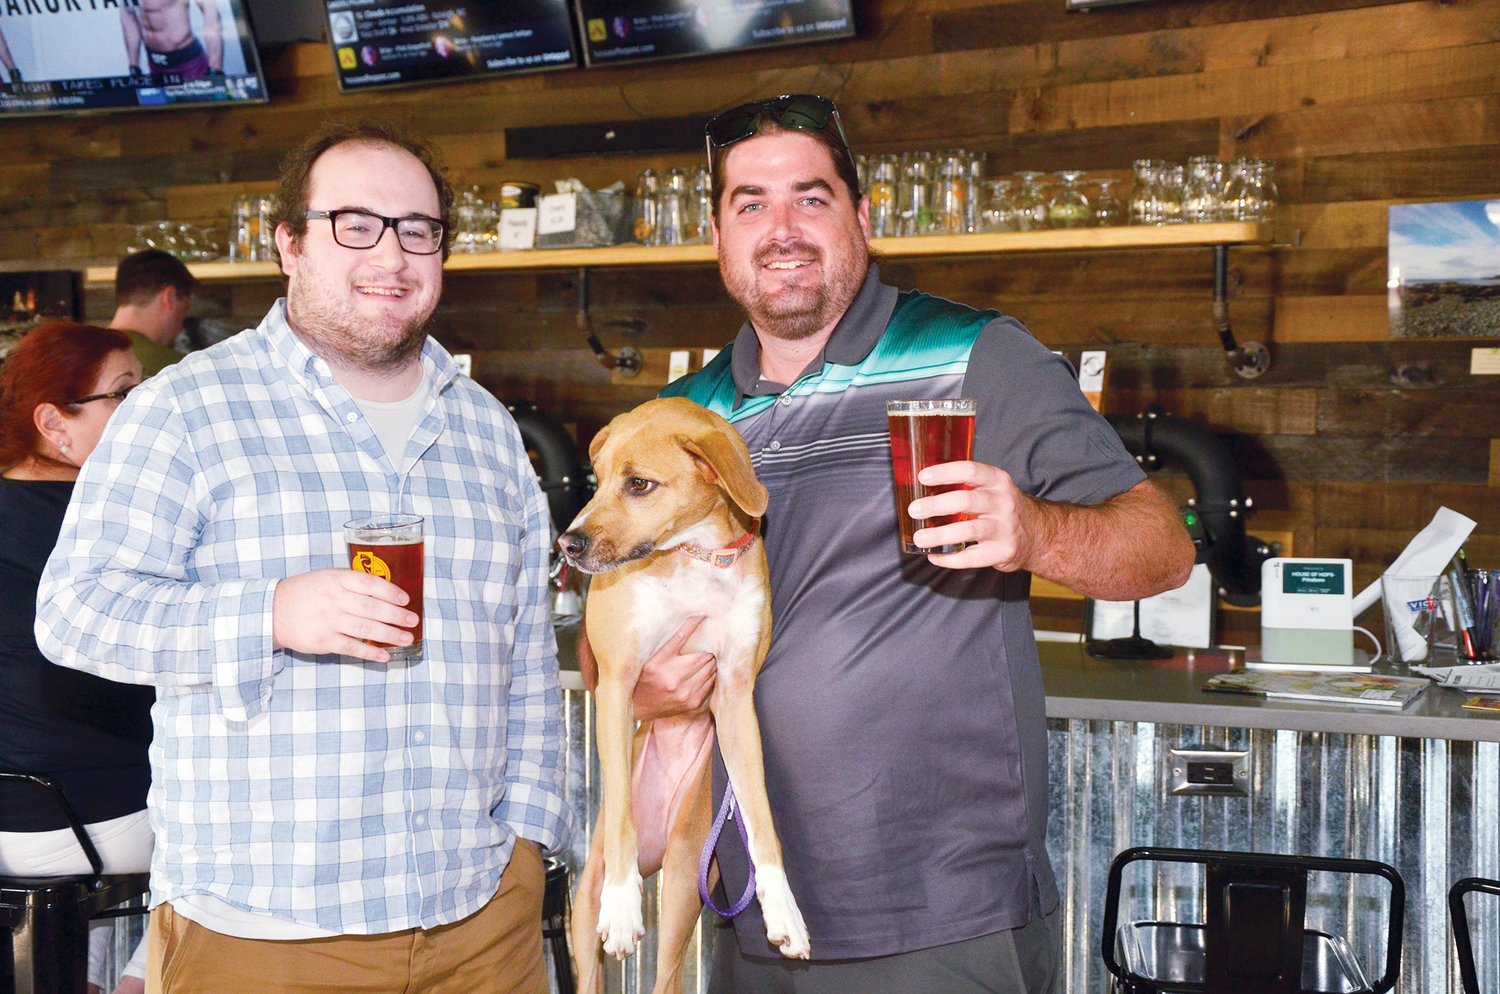 Nate Bauer and James Dail, holding Lucy, enjoy the atmosphere at House of Hops. 'We were looking for a dog-friendly bar,' Dail said. 'After a long week, it's good to unwind here.'